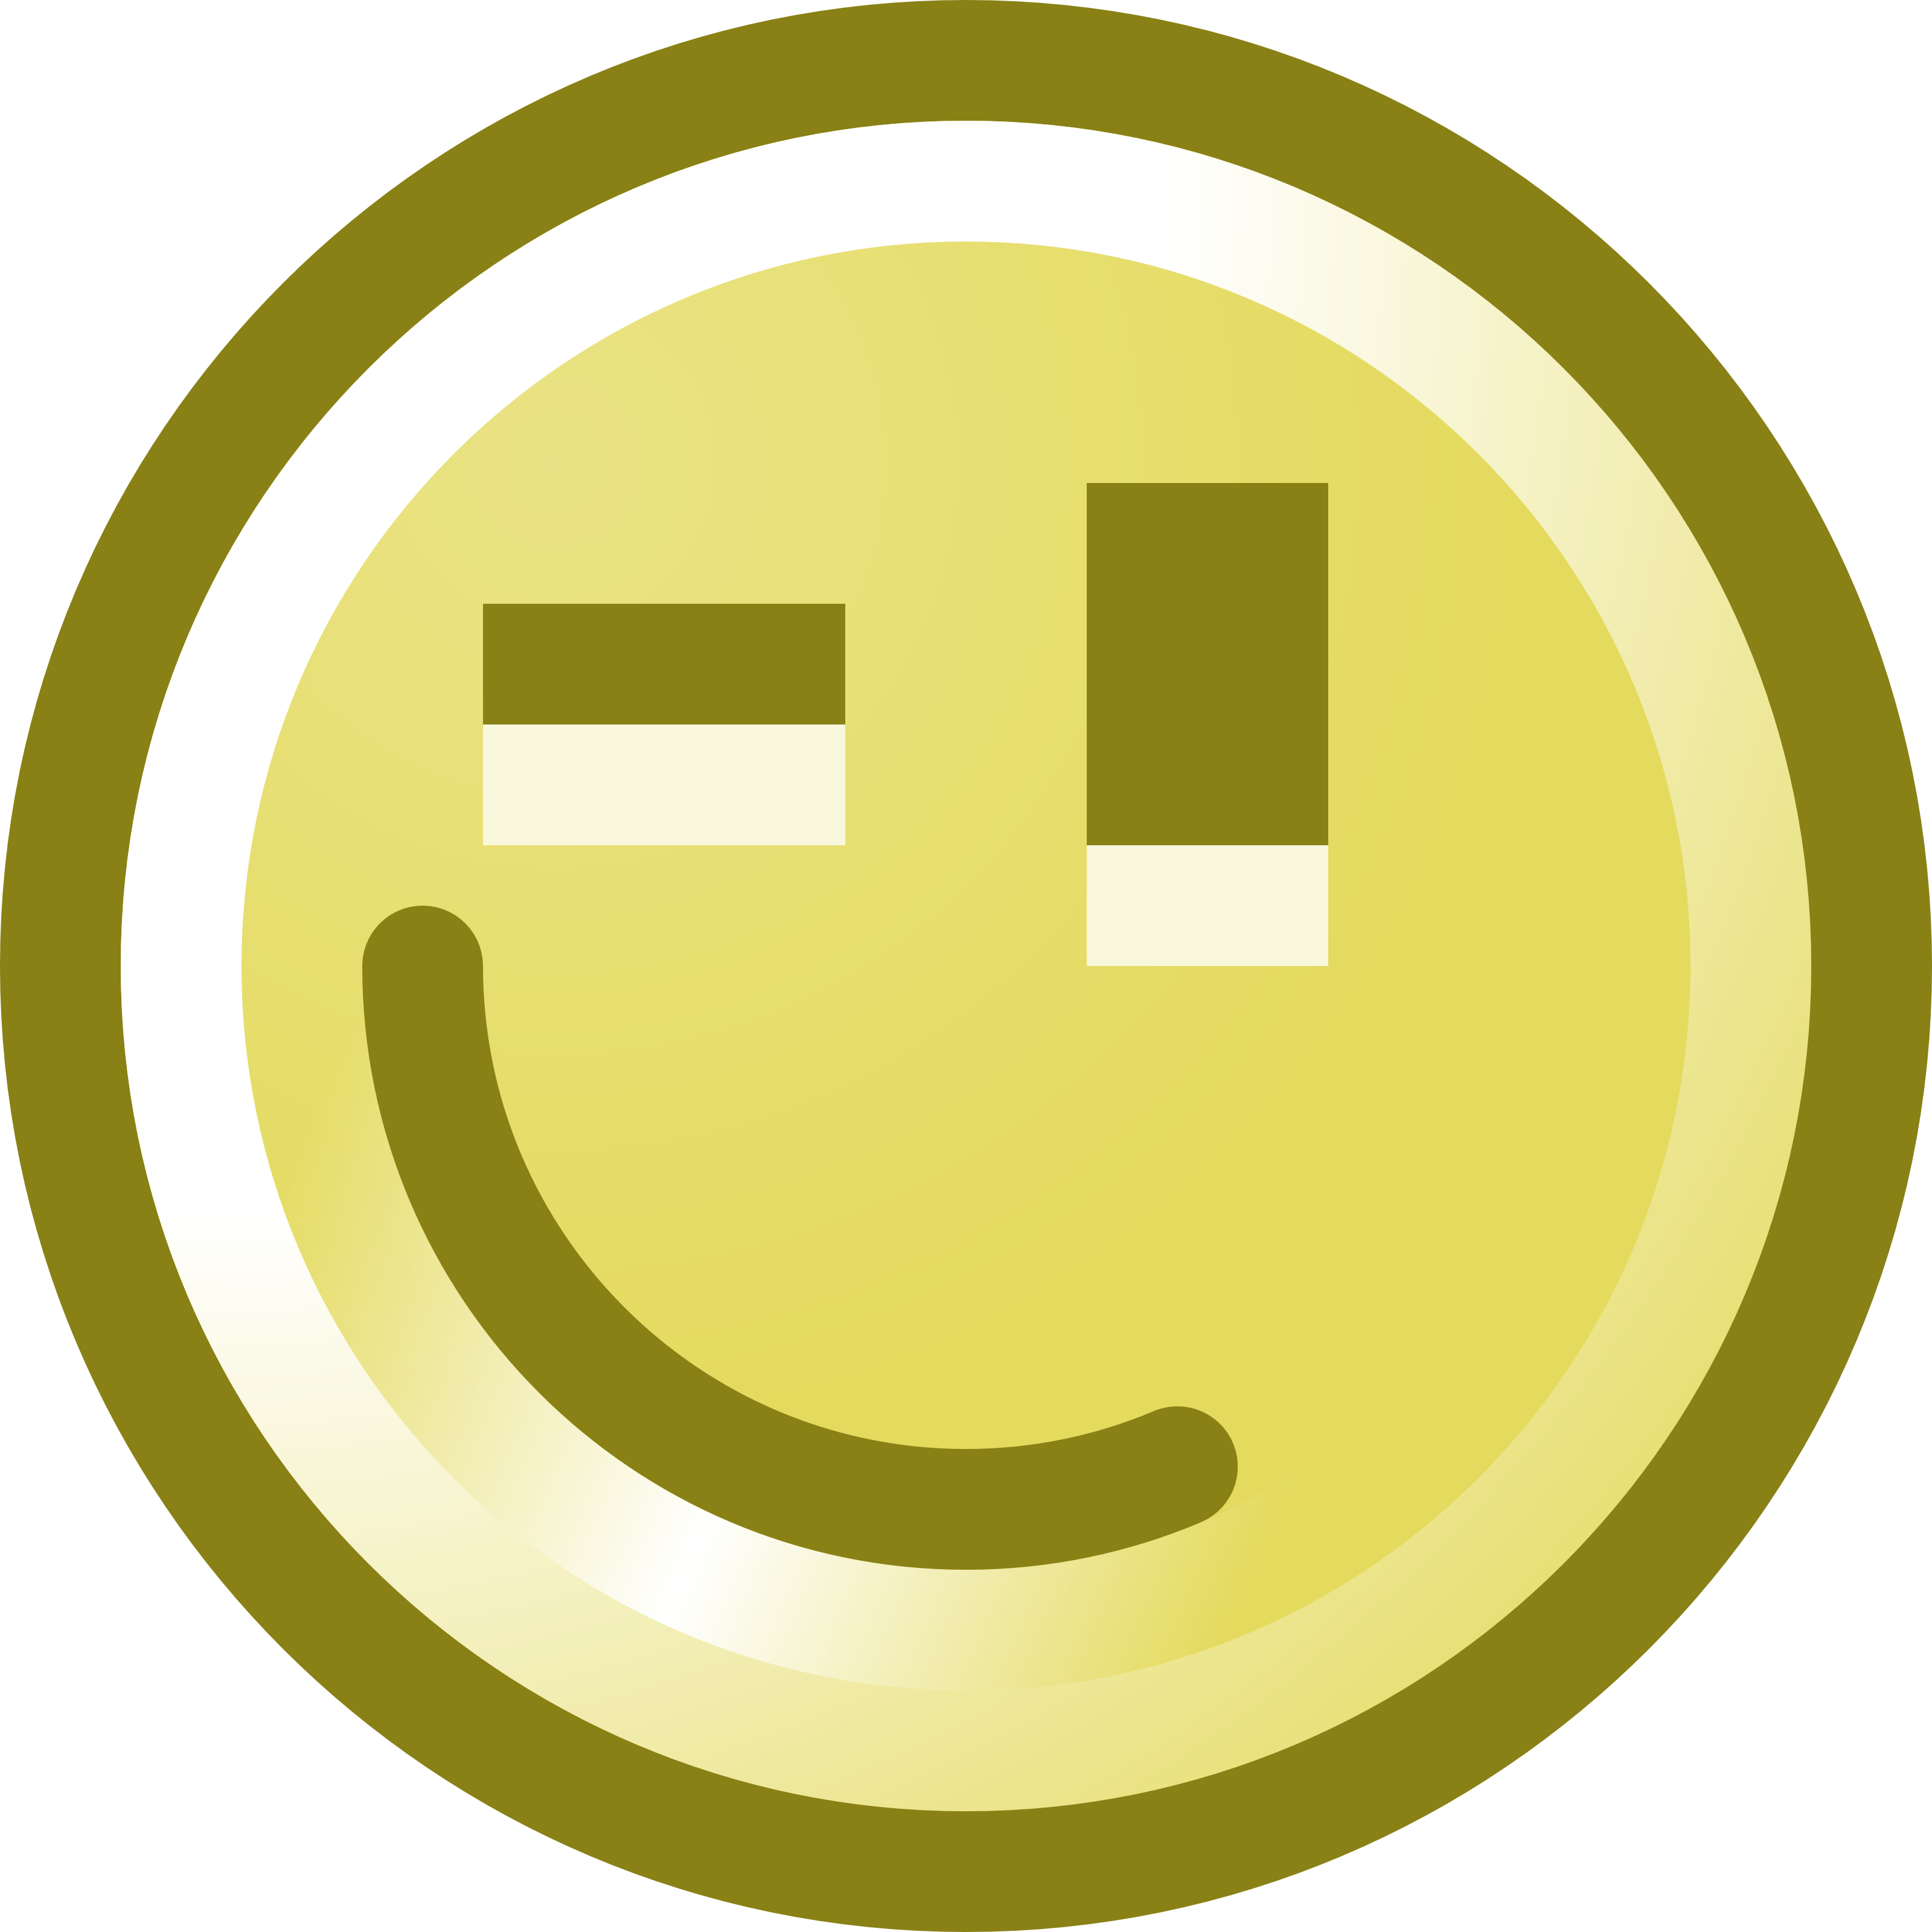 3200x3200 Free Winking Smiley Face Clip Art Illustration